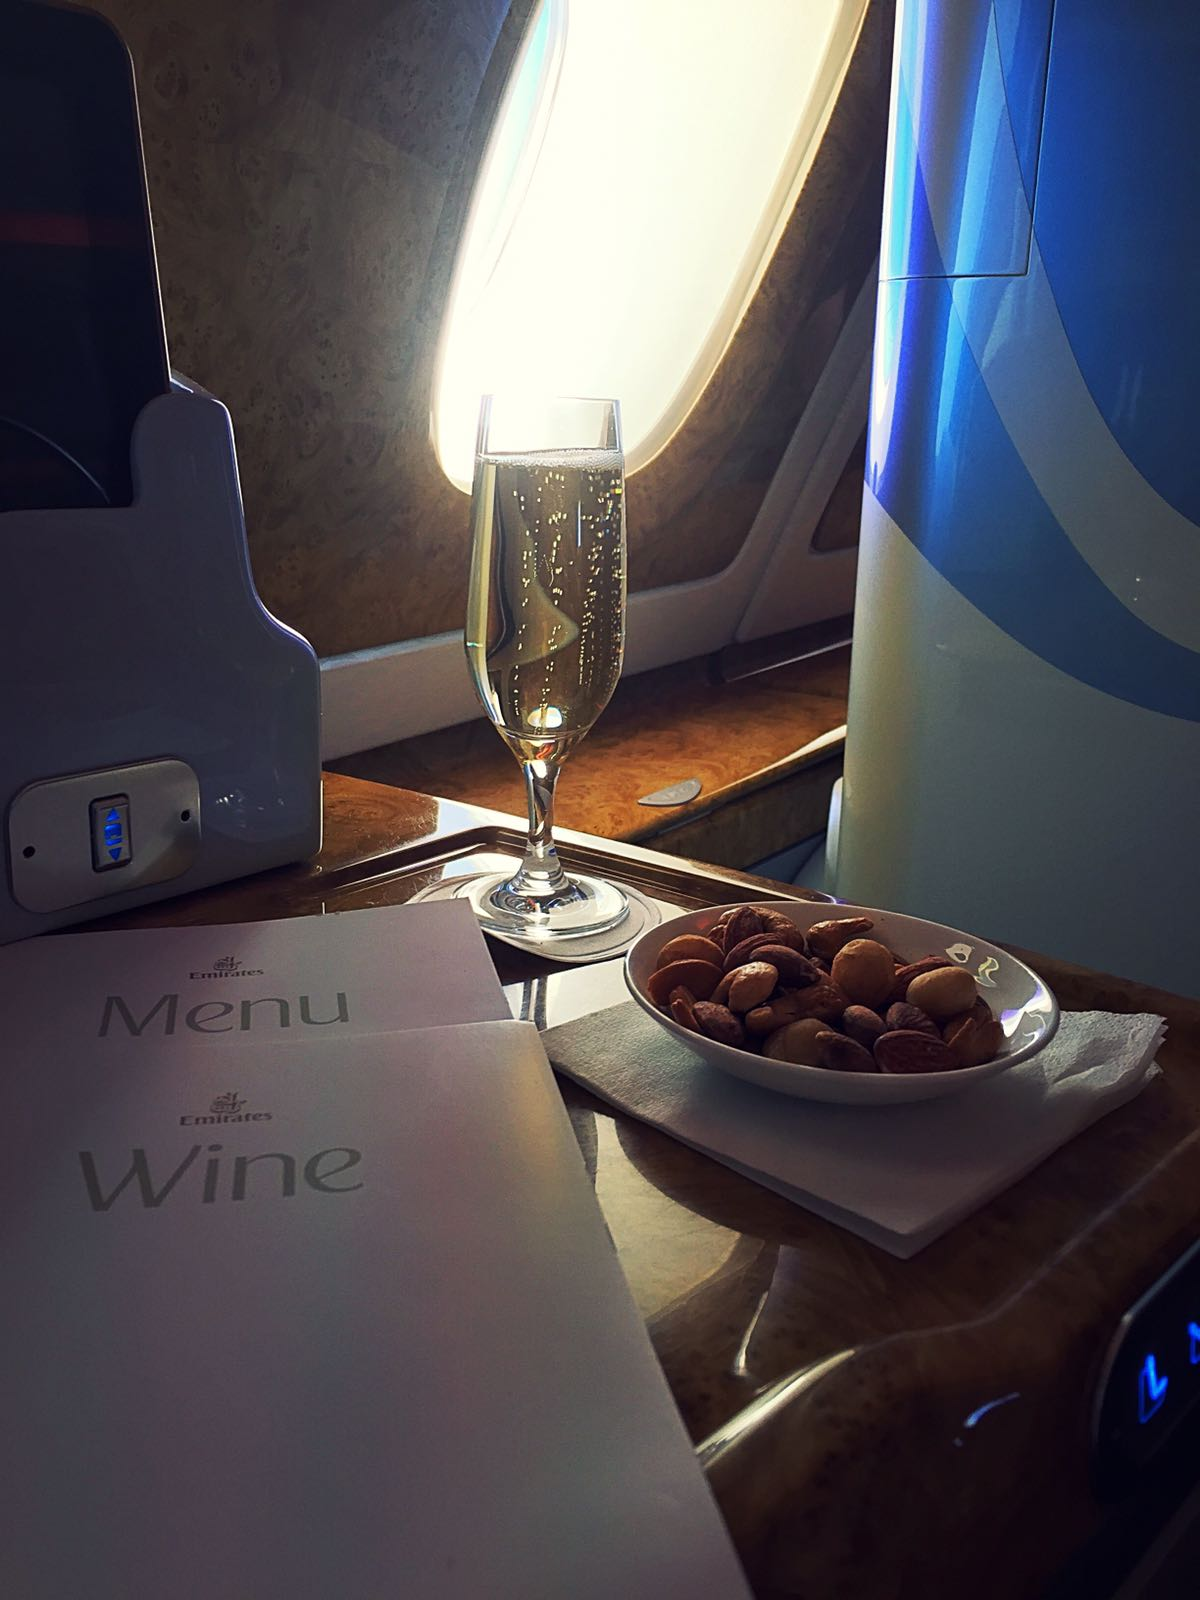 Wine on board of planes